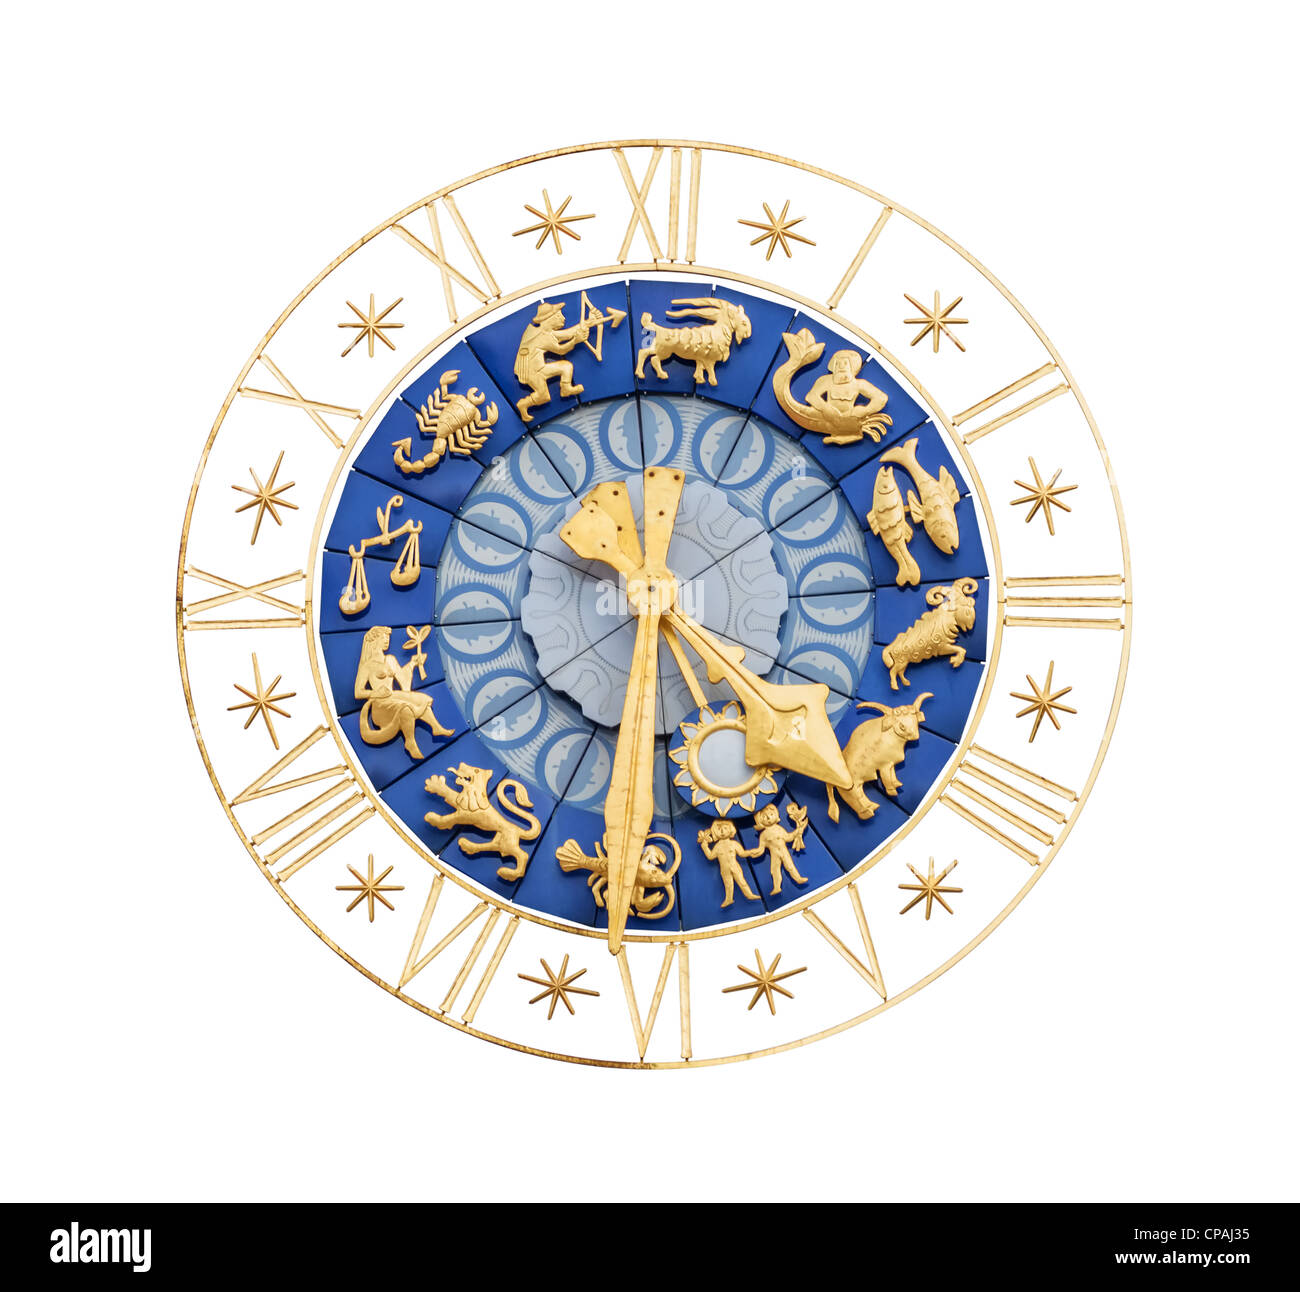 Medieval clock with gilt Roman numerals and Zodiac signs isolated on white background, Altes Rathaus, Bavaria, Munich - Stock Image